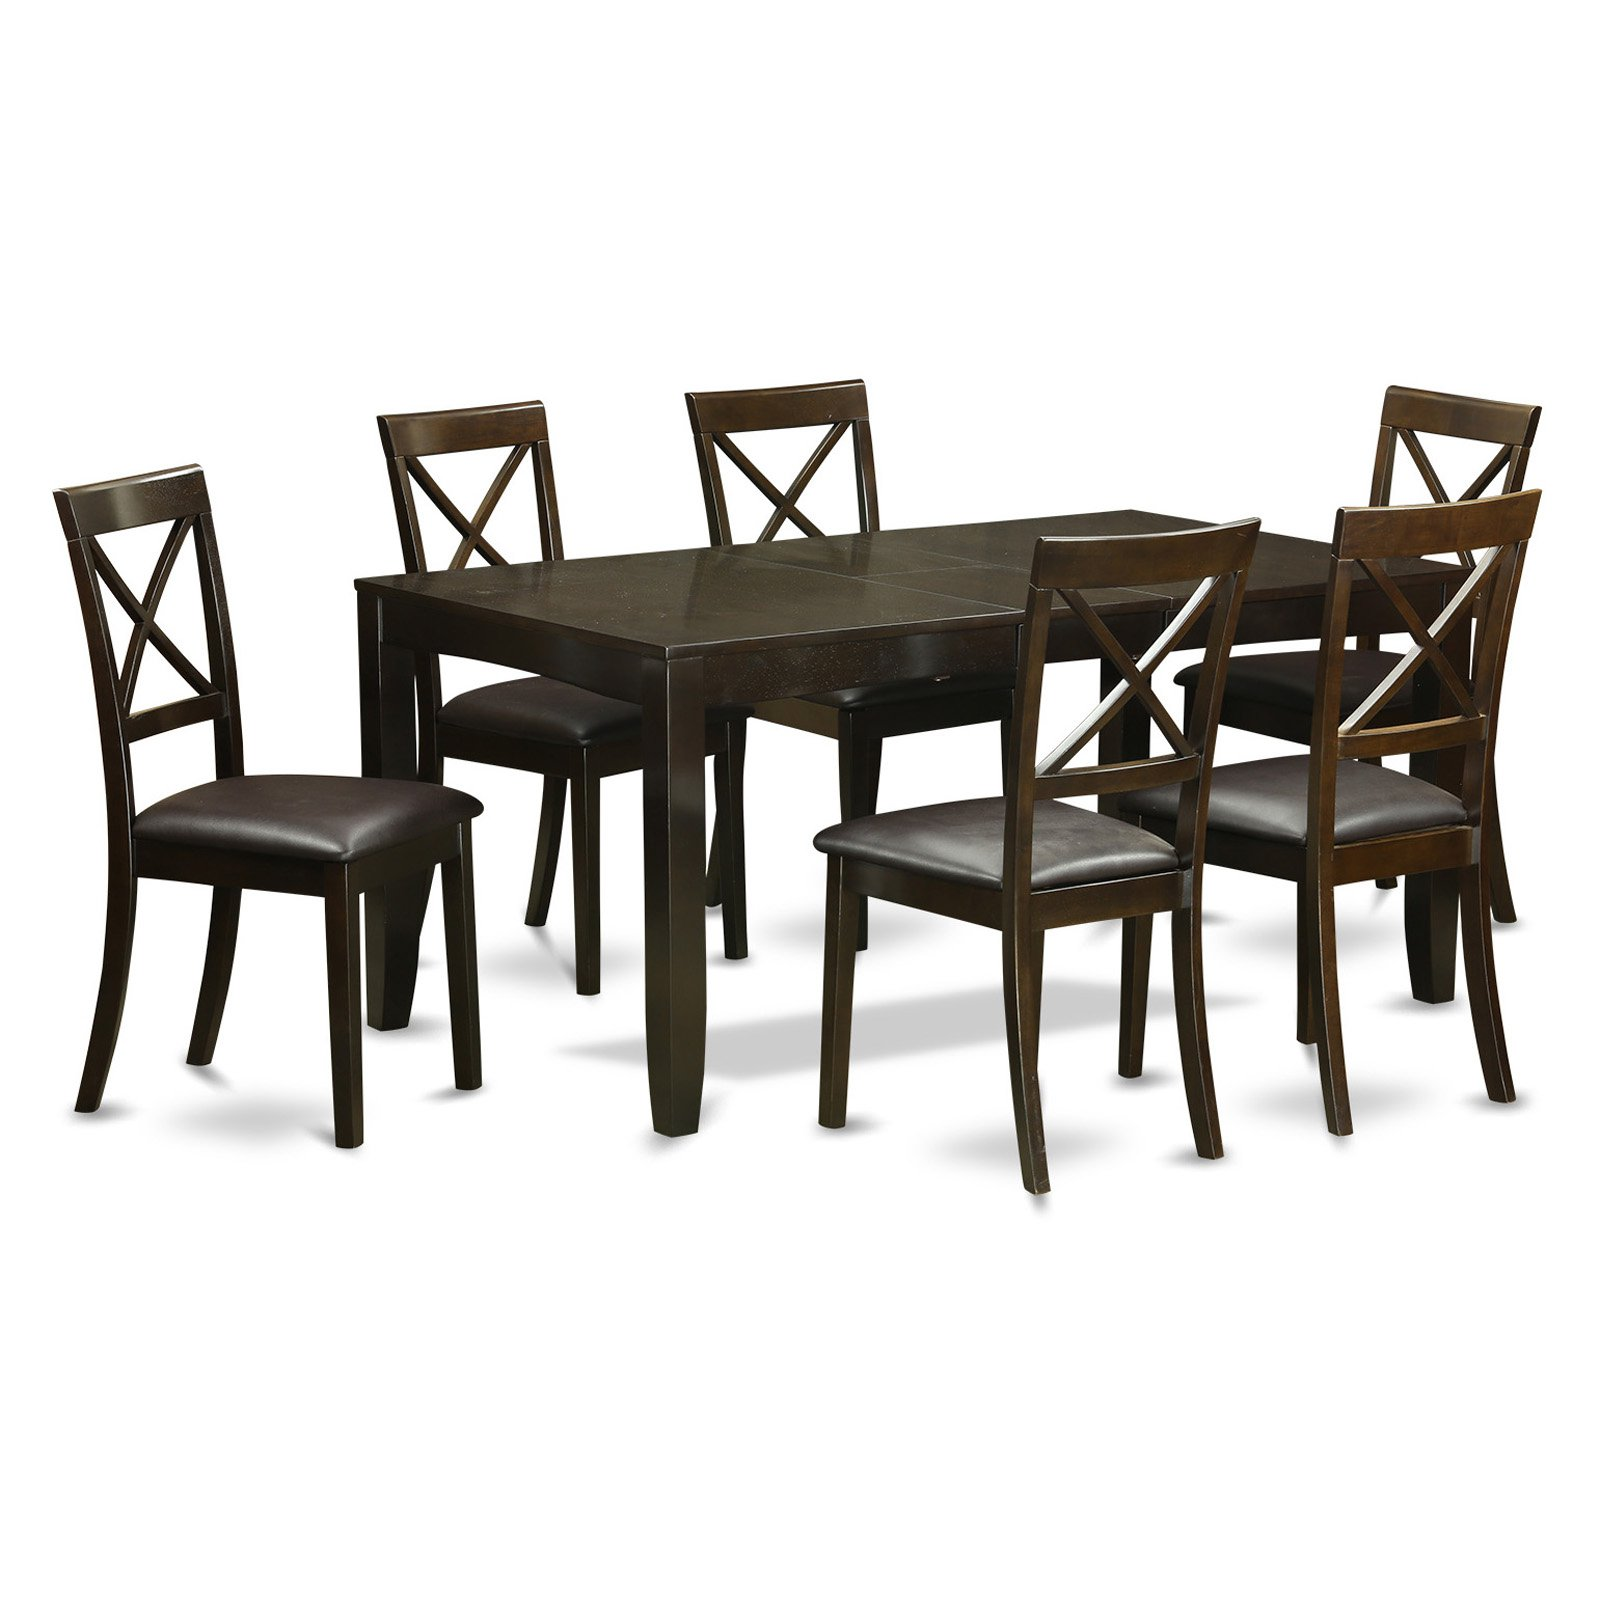 East West Furniture Lynfield 7 Piece Extension Dining Table Set with Boston Chairs